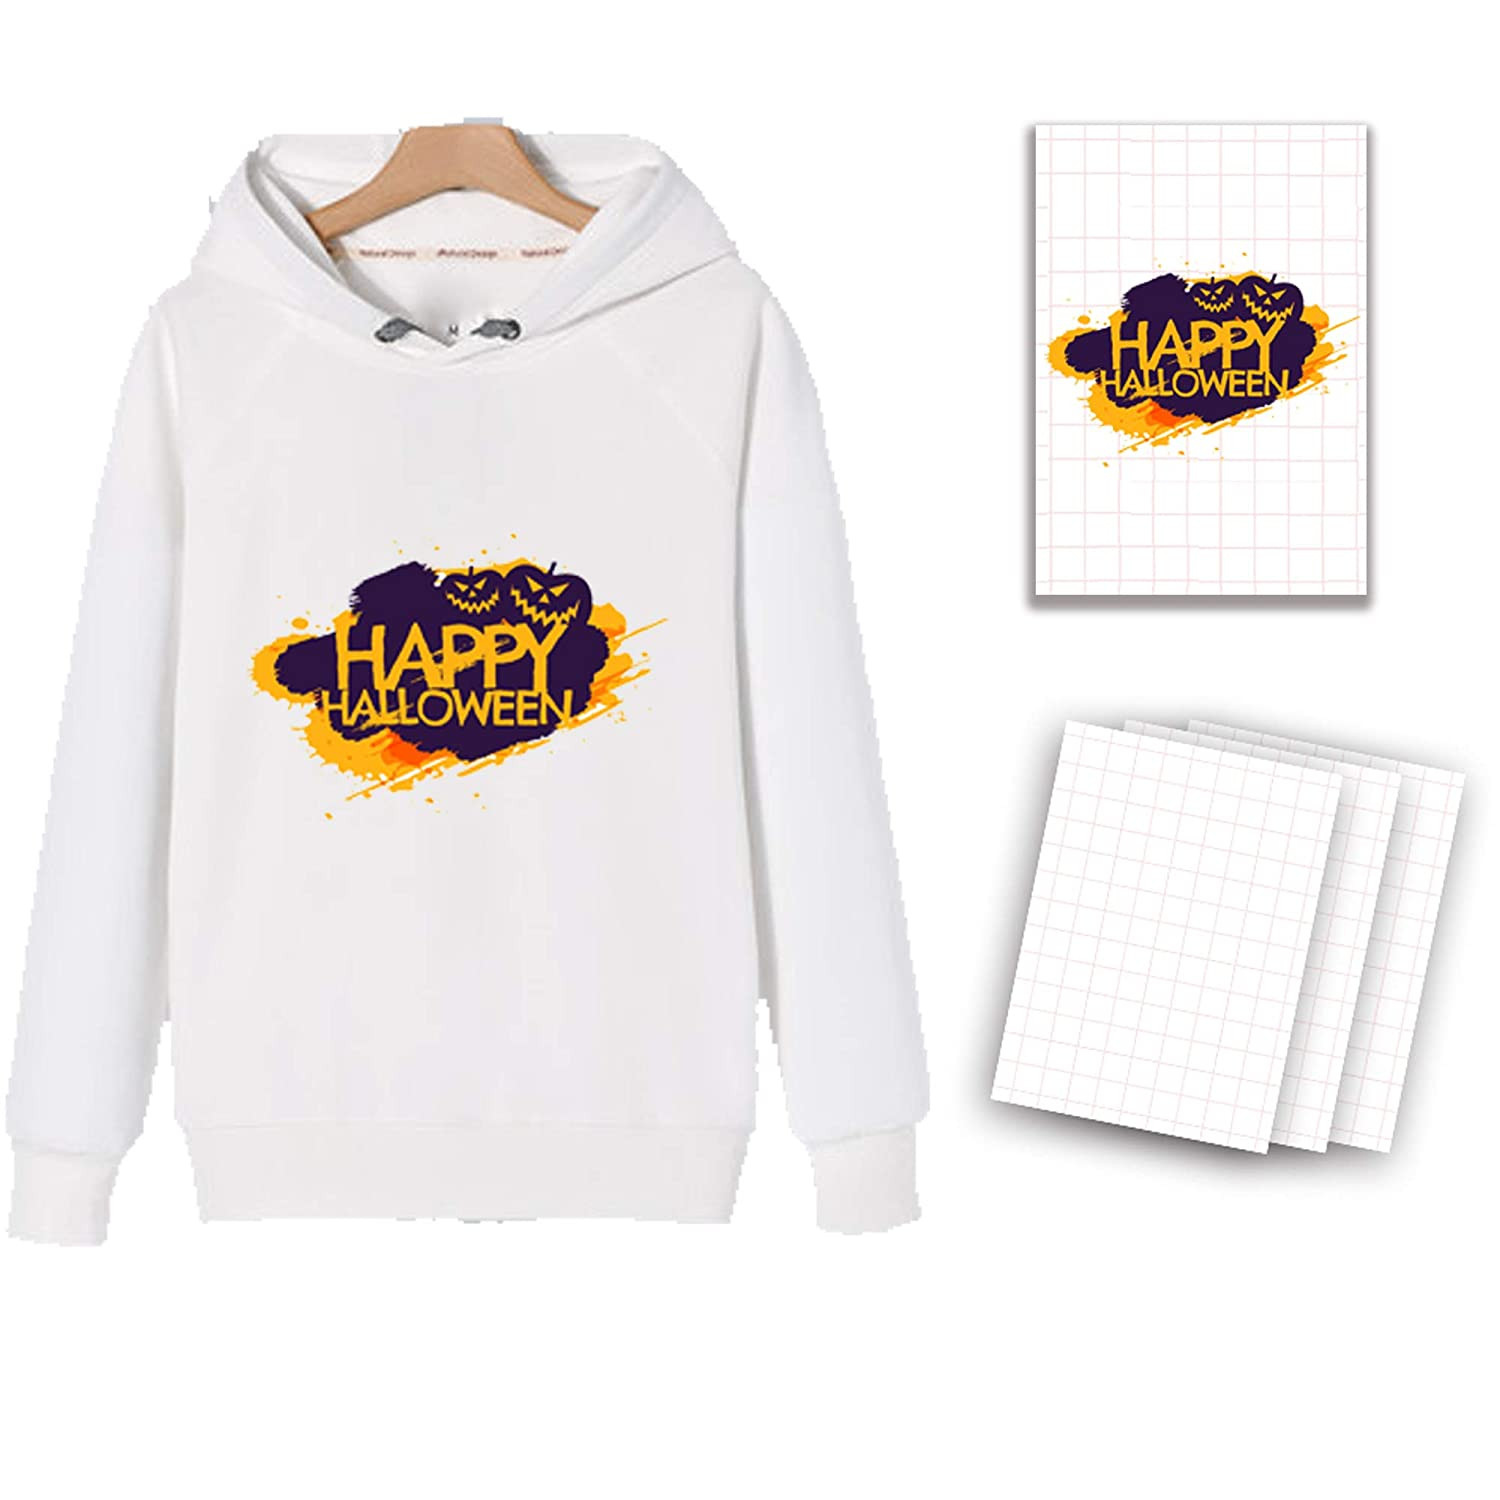 A4 T-Shirt Transfers Heat Transfer Sheets Paper for Inkjet Printers, for Light Fabric 8.27 X 11.7 (12 Sheets) Print Iron on Sheets) Print Iron on-Make Your Own Halloween Costumes BossTop